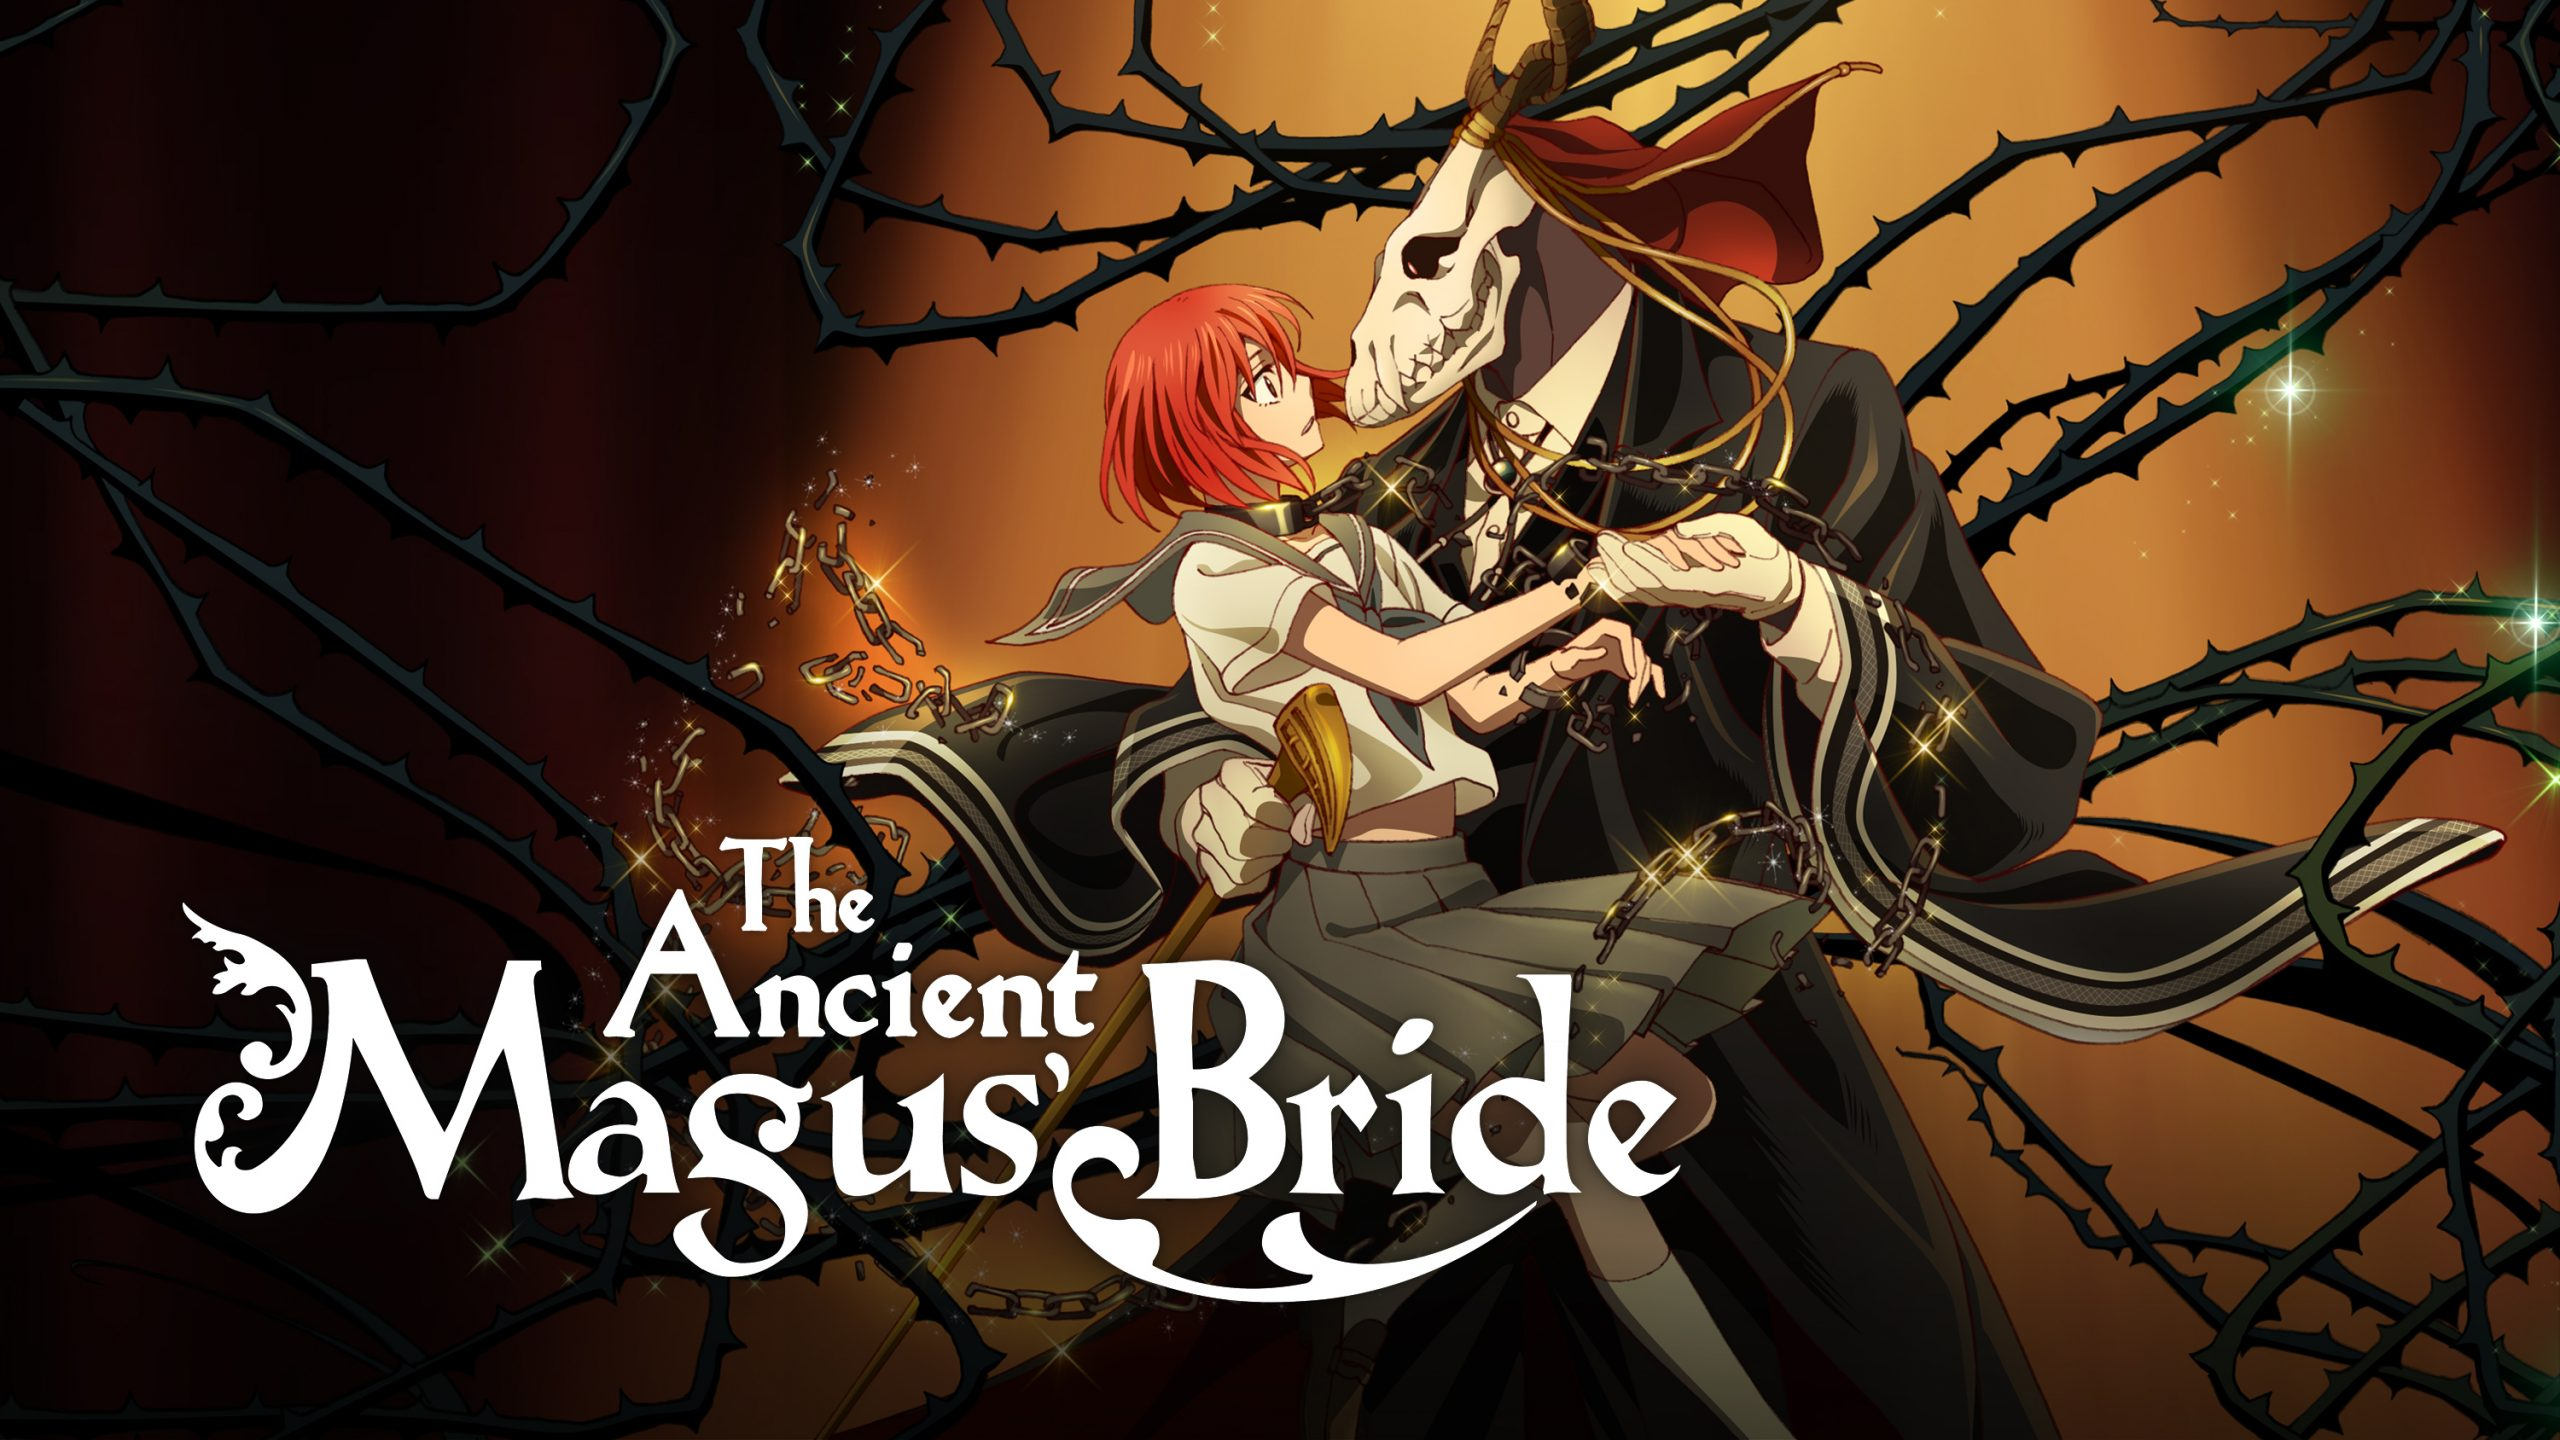 the ancient magus bride season 2 release date